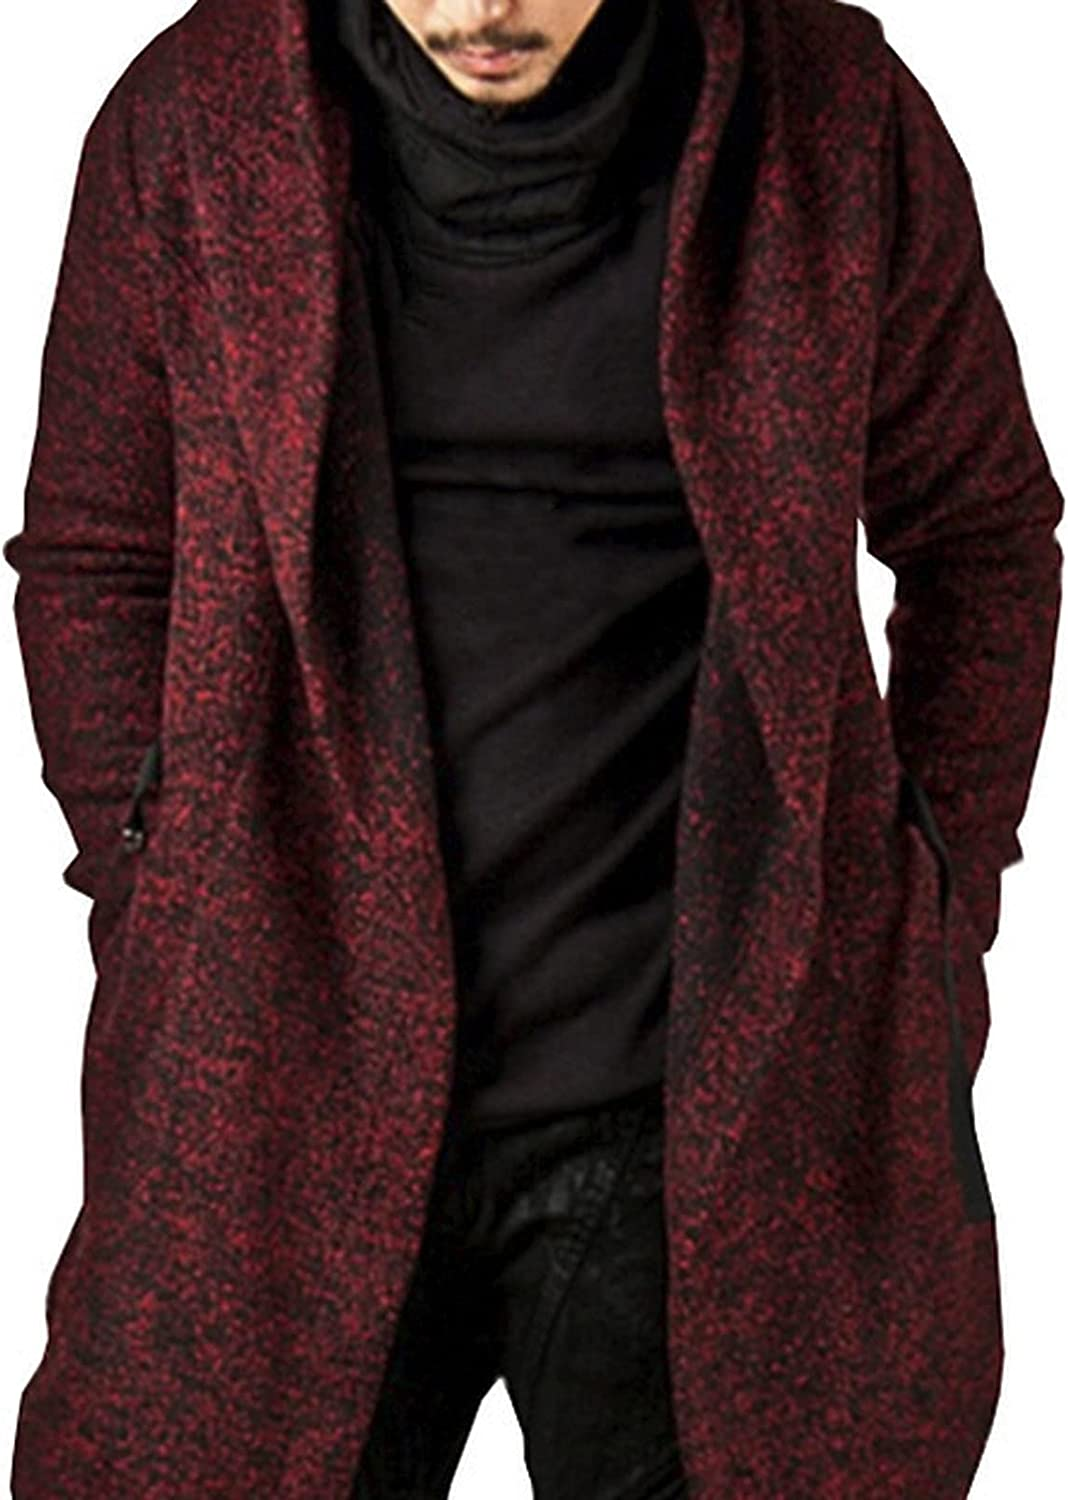 Men's Warm Hooded Windbreaker Fashion Loose Long Vintage Button Down Punk Goth Coat for Autumn Winter